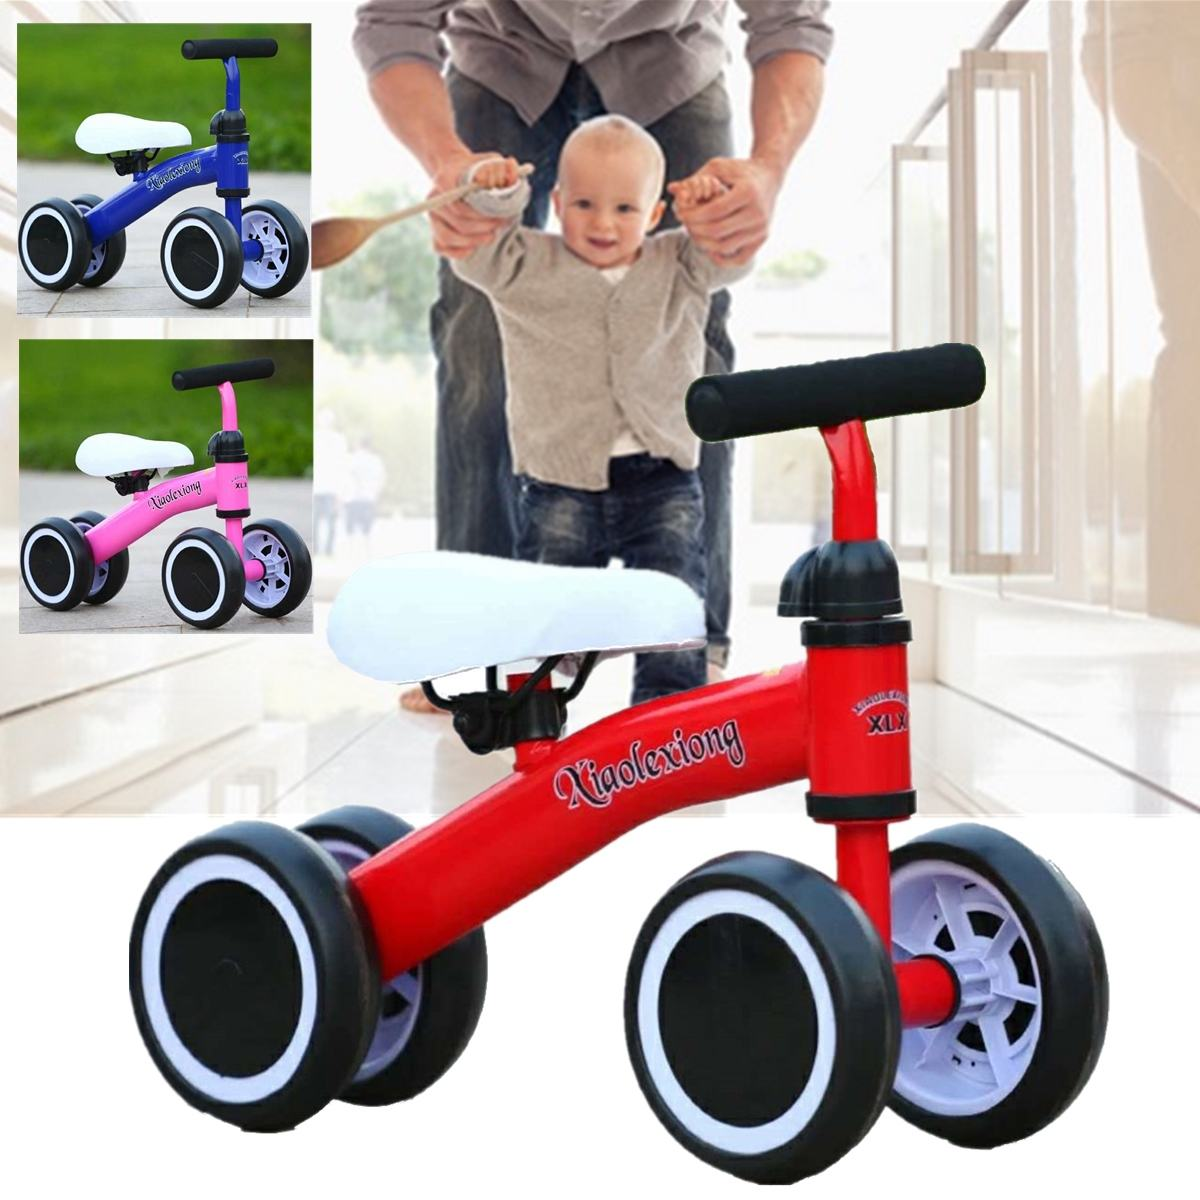 New Children Three Wheel Balance Bike Scooter Baby Walker Portable Bike No Foot Pedal Bicycle Baby Walker Tricycle Riding Toys In Short Supply Activity & Gear Mother & Kids